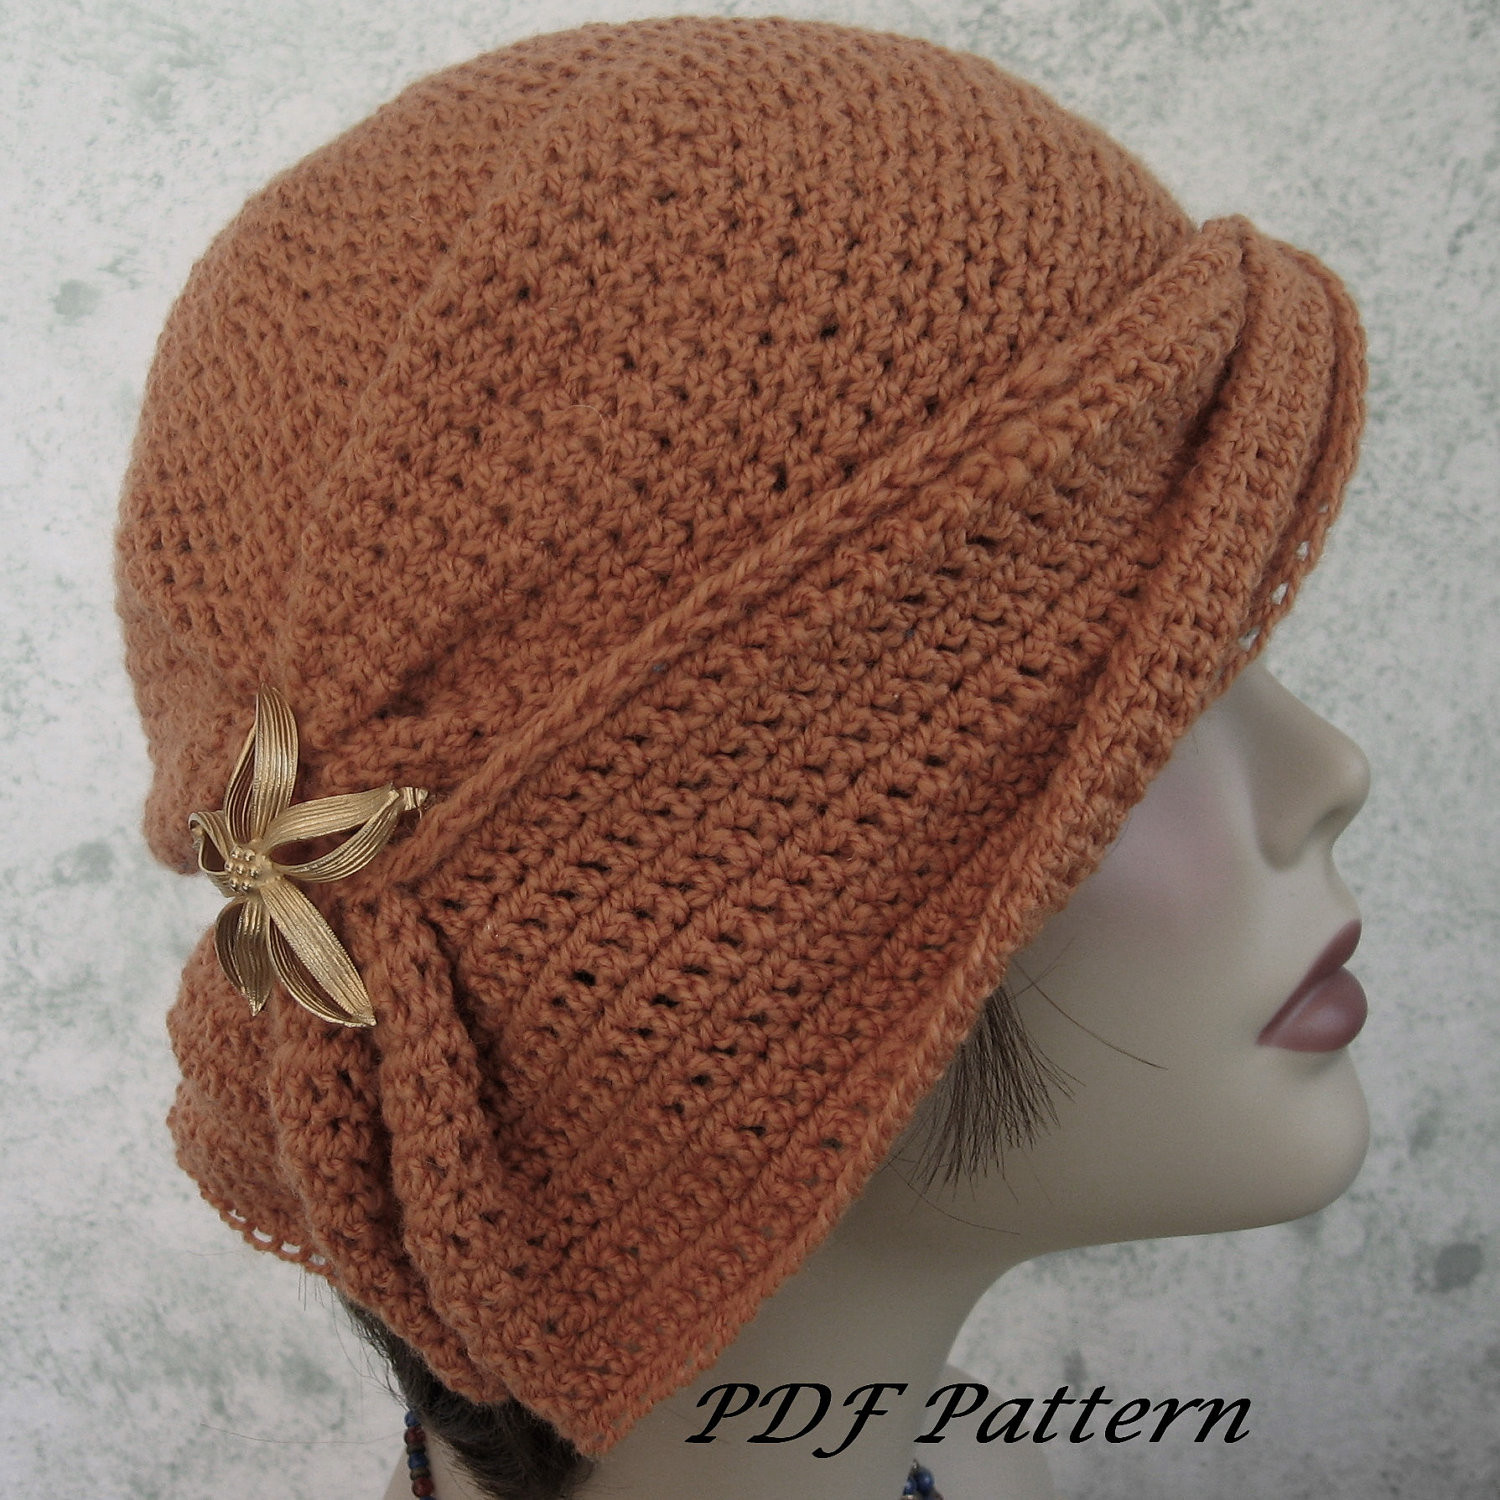 Easy Crochet Hat Luxury Free Crochet Hat Patterns You Have Been Looking for Of Delightful 50 Models Easy Crochet Hat